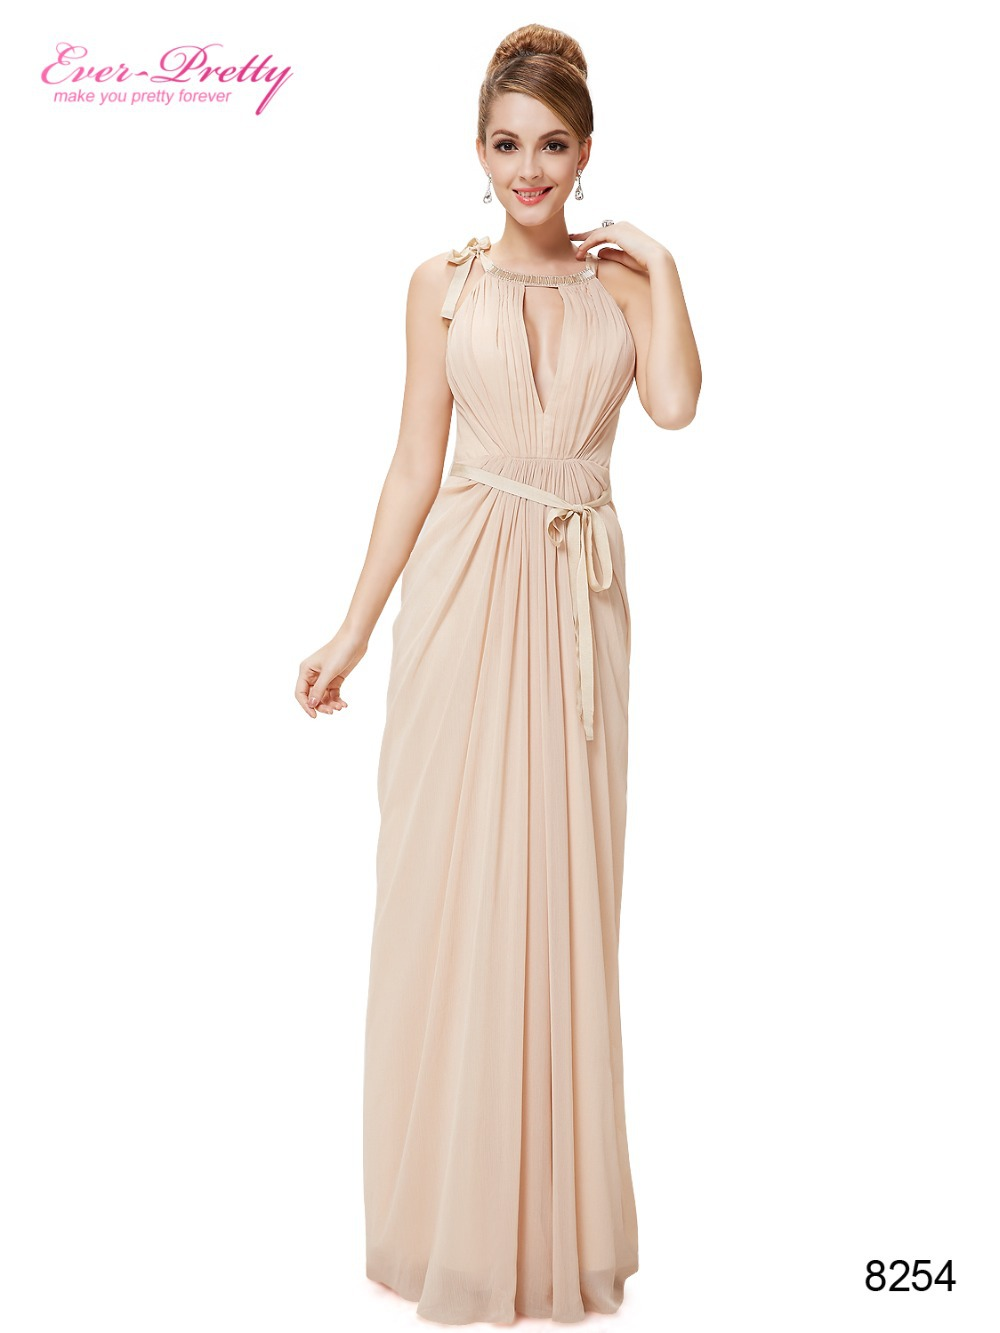 for women he08254kq 2015 vestidos evening dresses in evening dresses